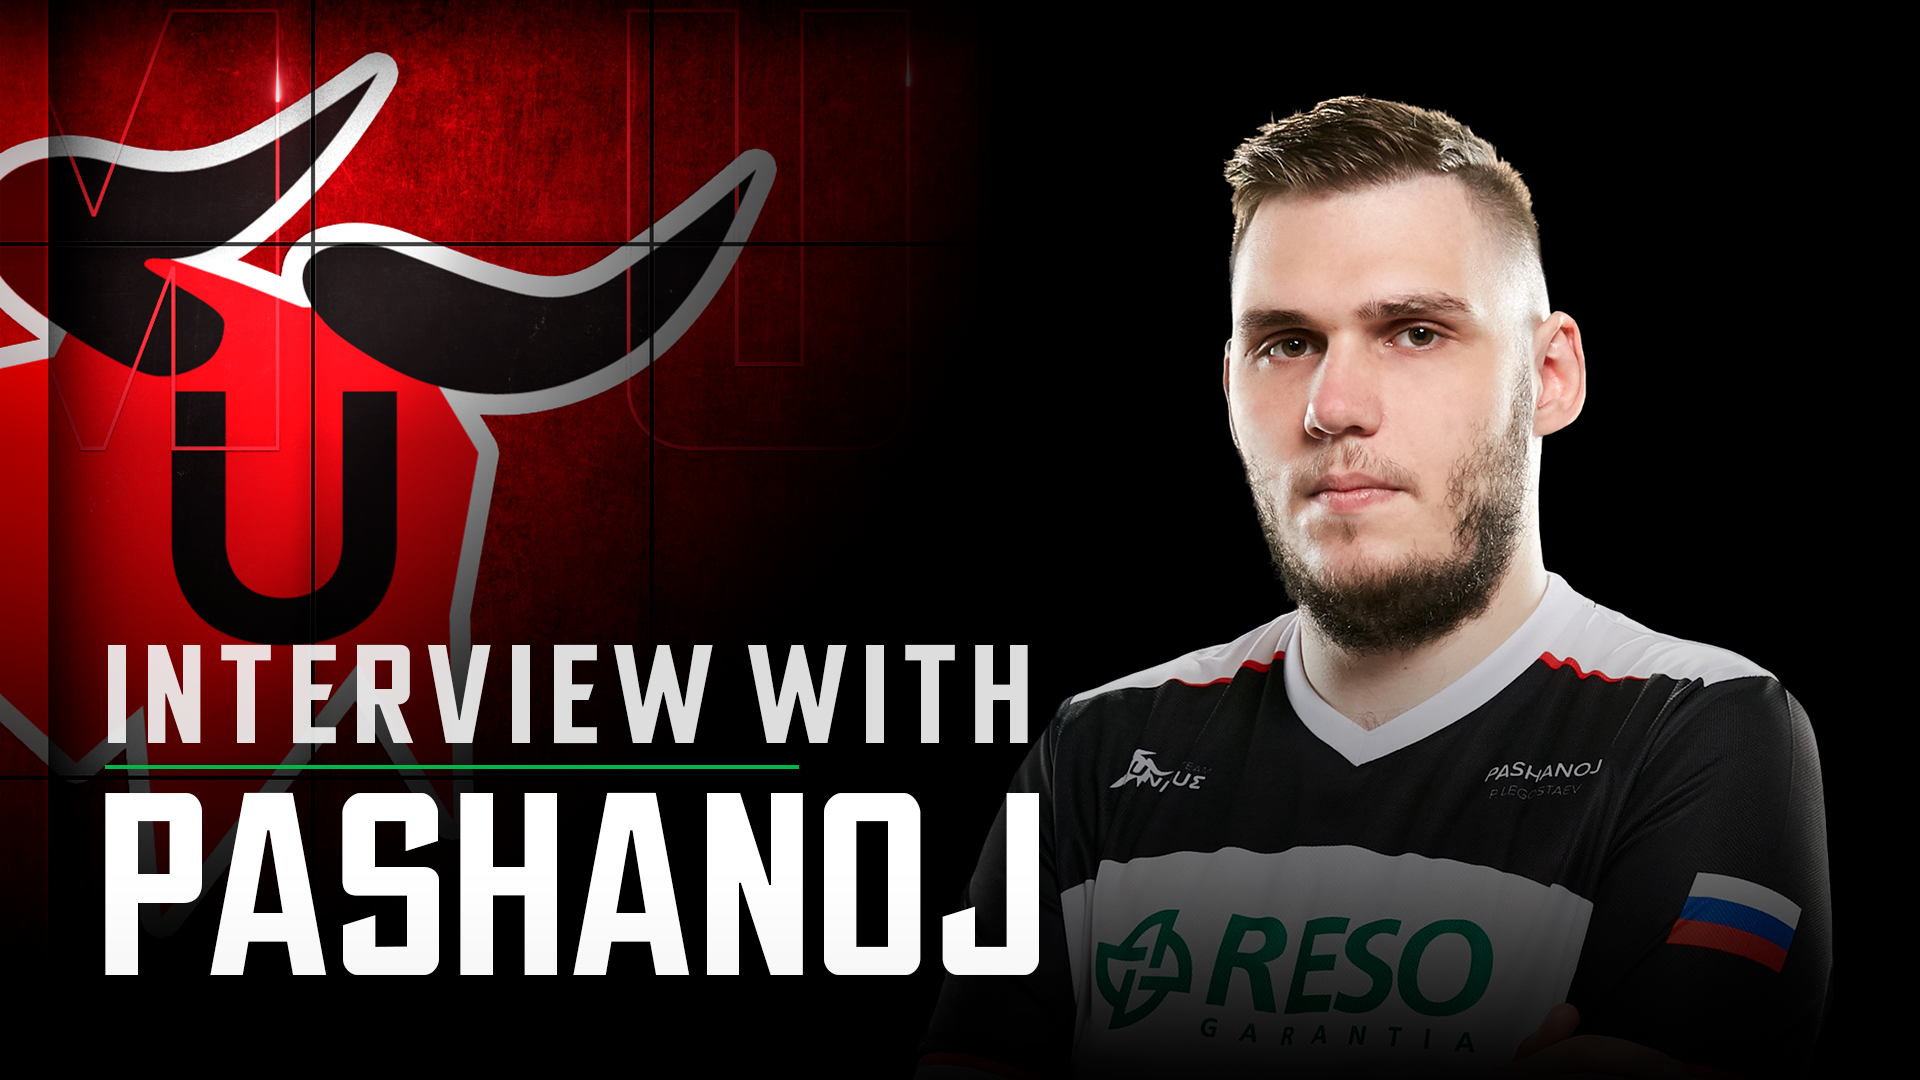 #BerlinMinor2019 | Interview with PASHANOJ from Unique Team